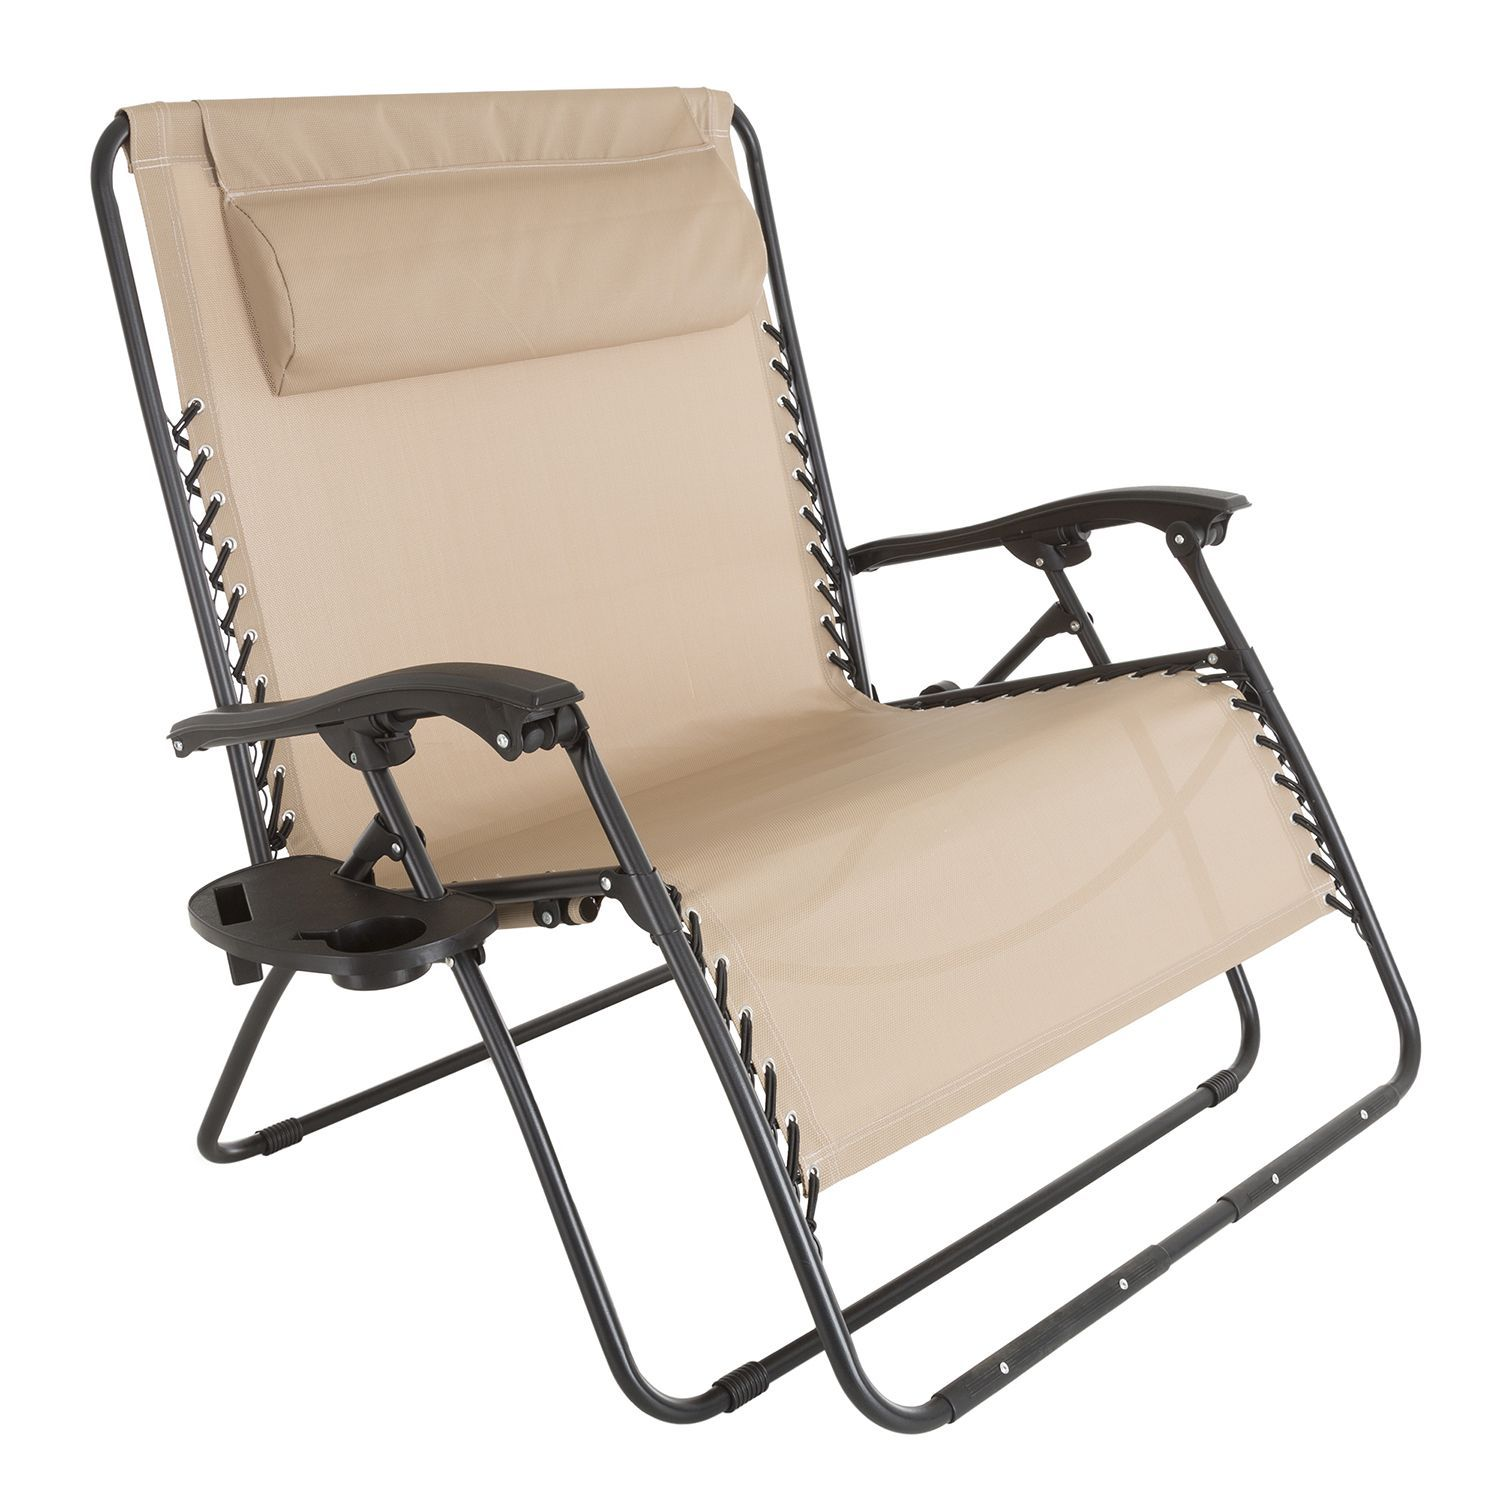 Beige Zero Gravity Loveseat With Pillow Cup Holder Lawn Chairs